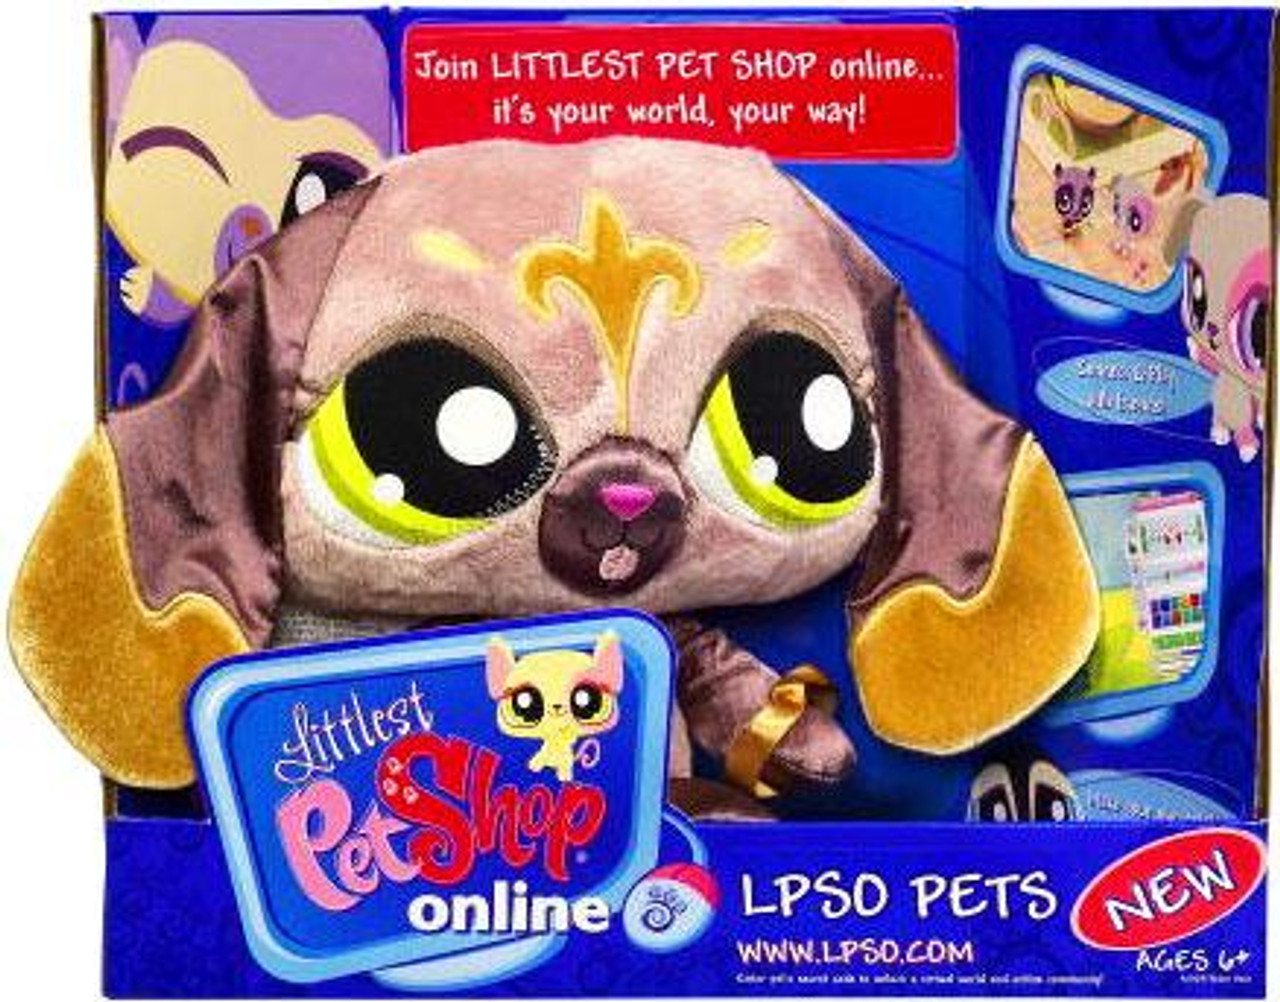 Littlest Pet Shop Online LPSO Pets Dog Plush [Brown with Floppy Ears]